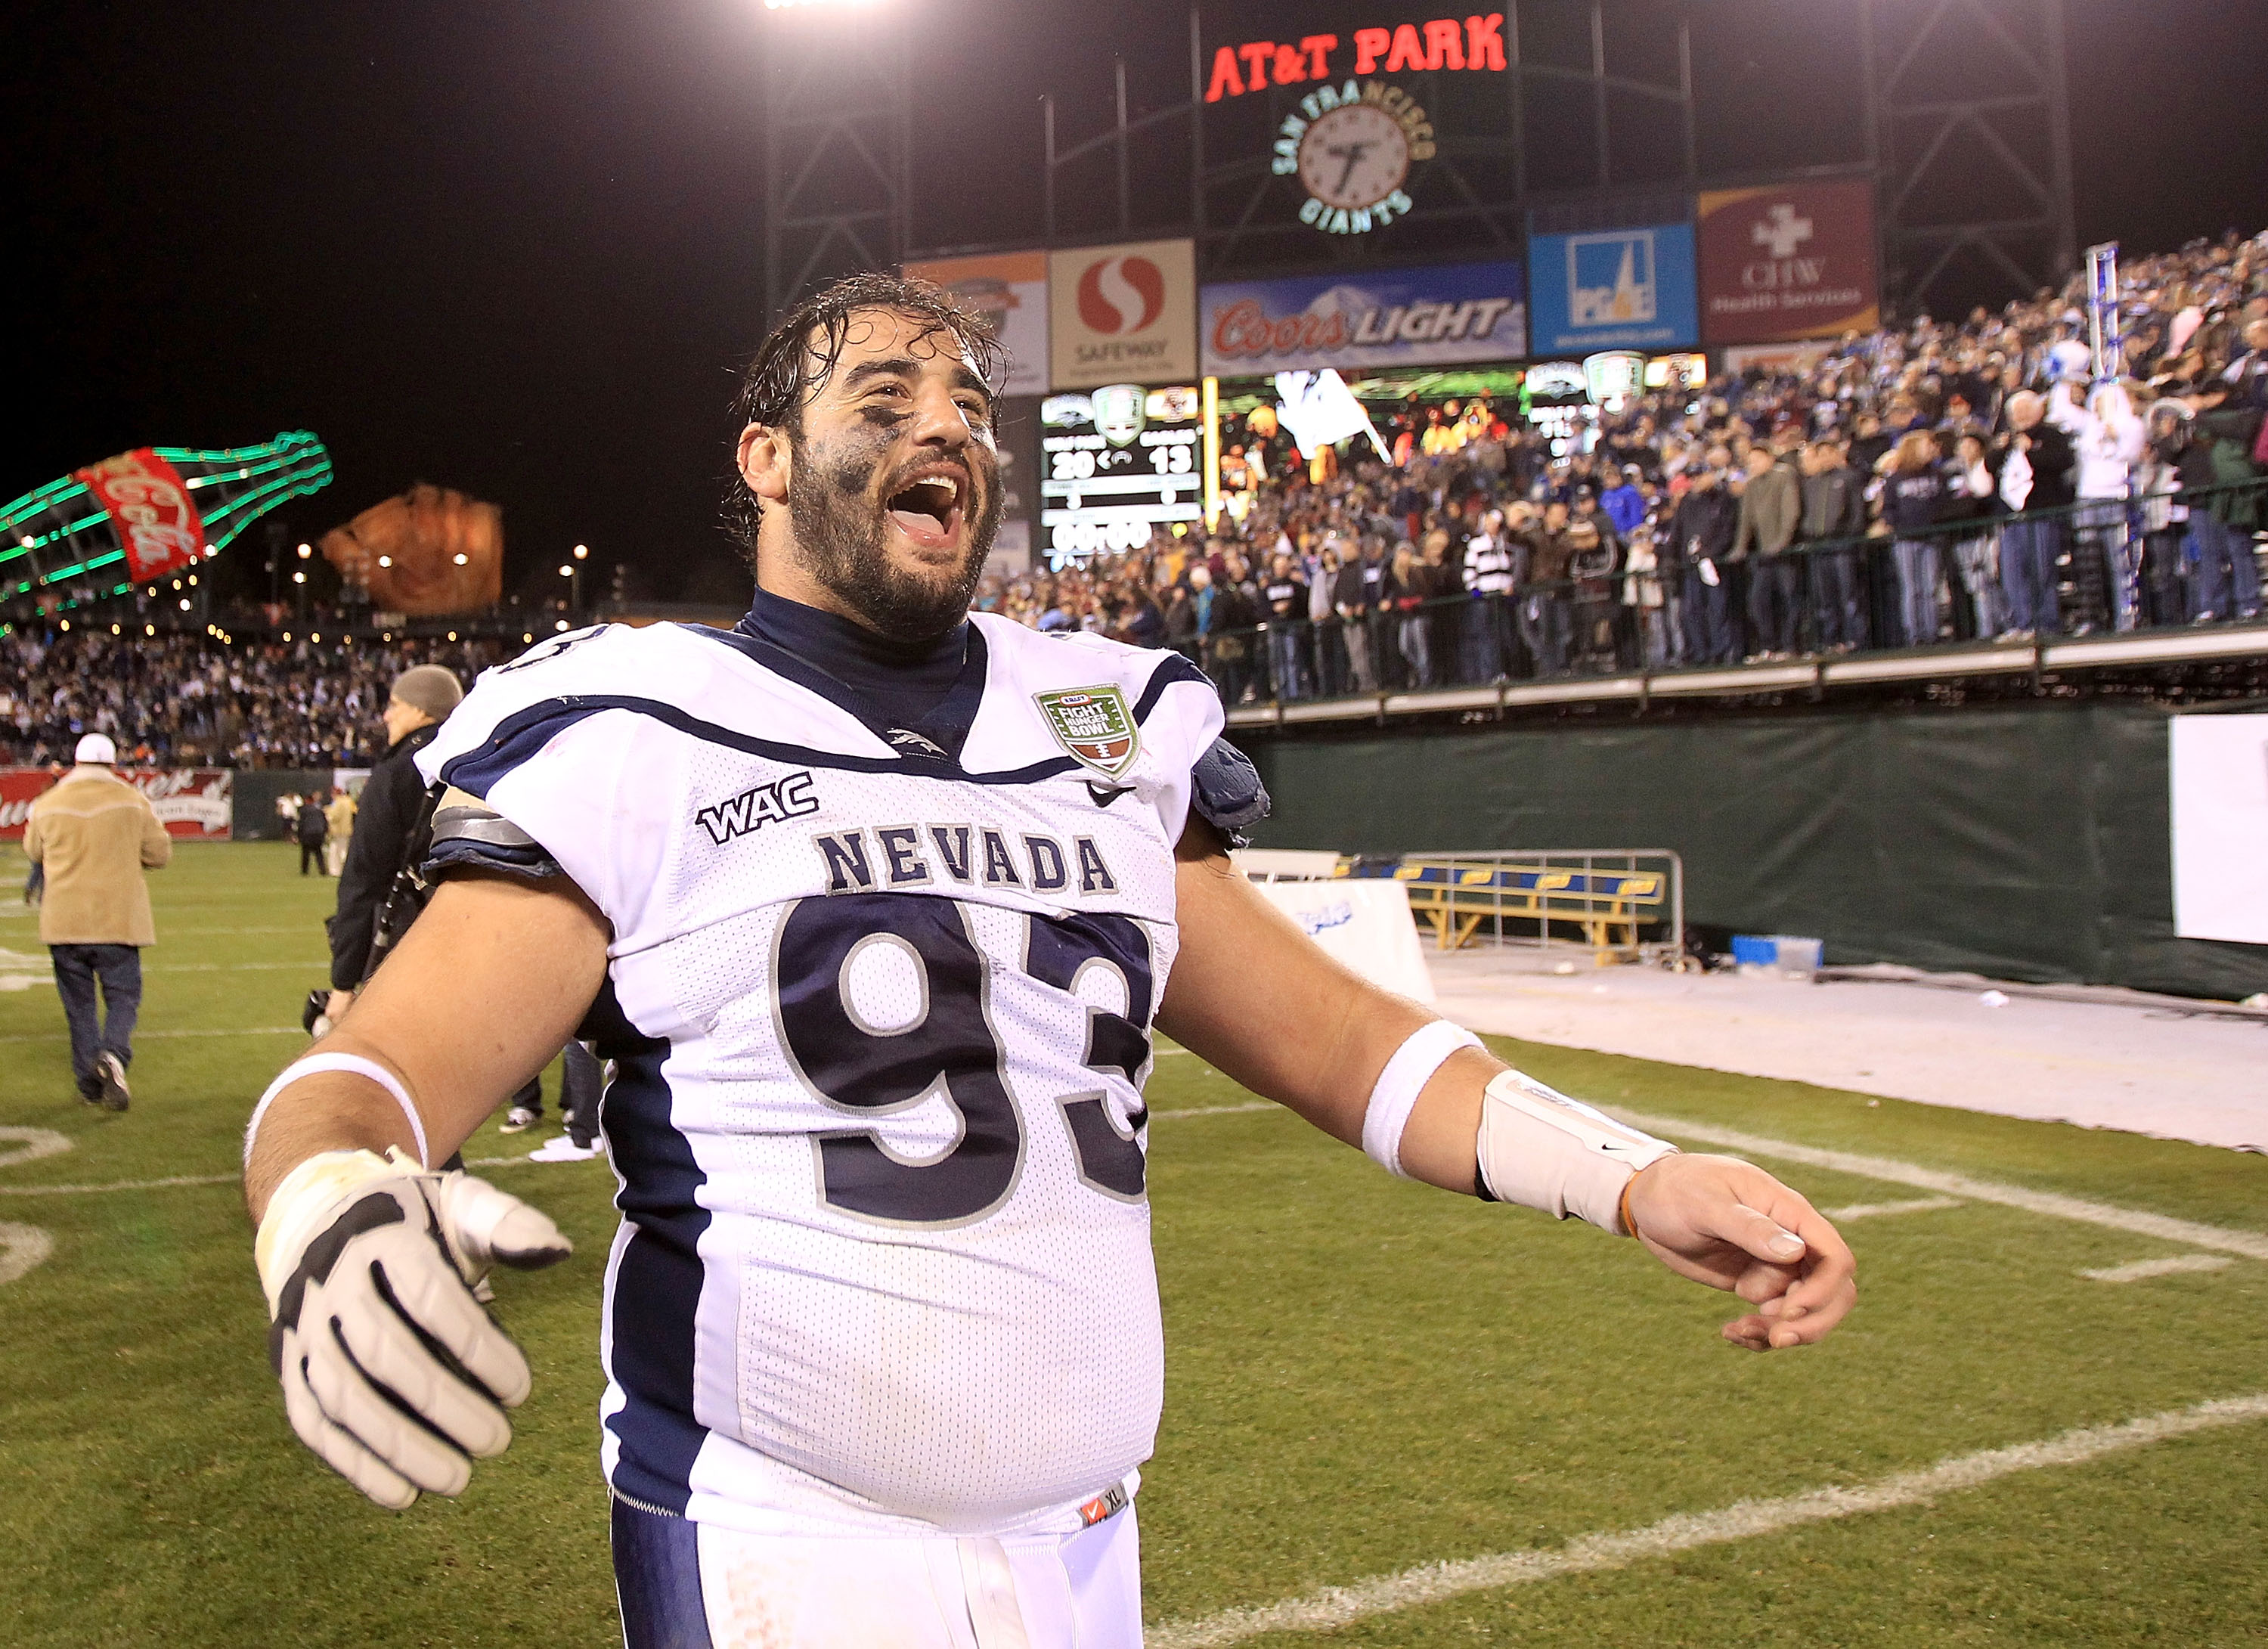 SAN FRANCISCO, CA - JANUARY 09:  Zack Madonick #93 of the Nevada Wolf Pack celebrates after beating Boston College in the Kraft Fight Hunger Bowl at AT&T Park on January 9, 2011 in San Francisco, California.  (Photo by Ezra Shaw/Getty Images)